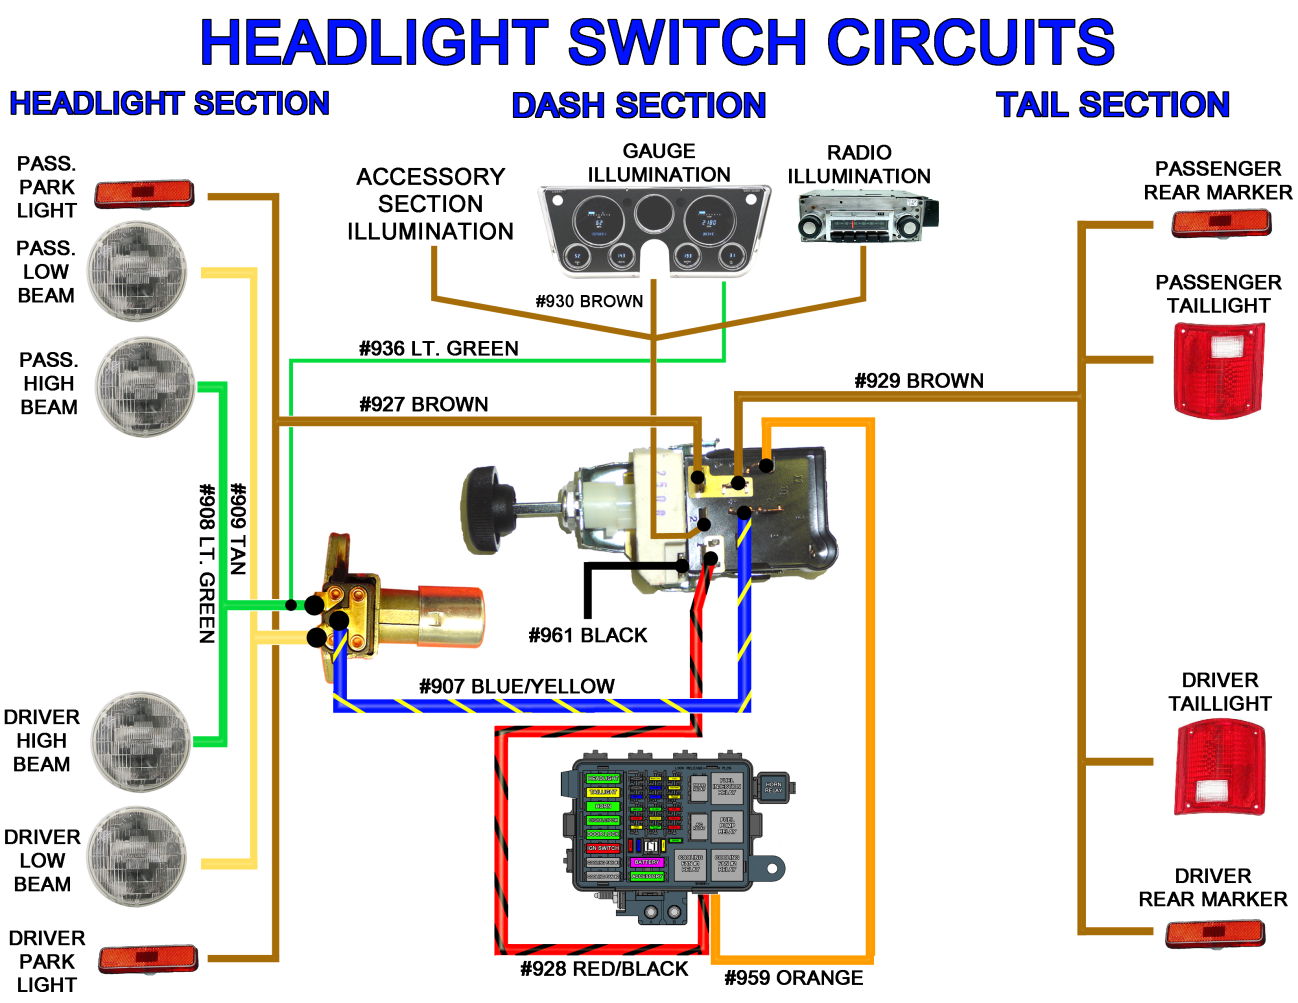 Headlight Wiring Diagram 4 Free For You 98 S10 Chevy Volt Bulb Engine Image 04 Touareg